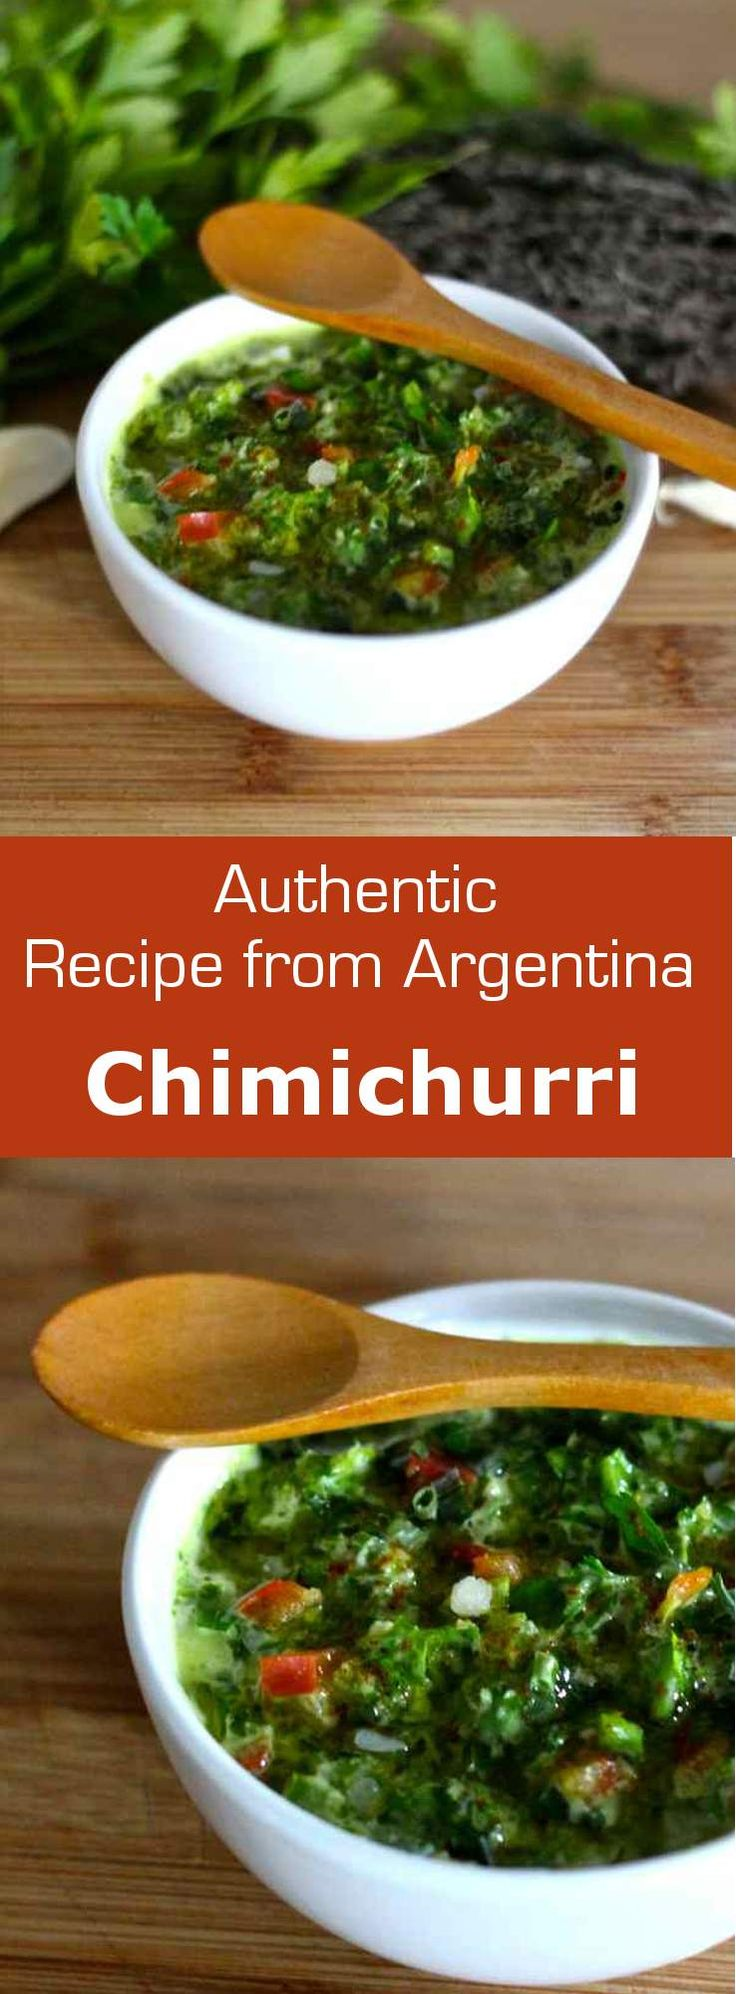 Chimichurri sauce is a classic Argentinian dressing that is typically used on grilled meats.